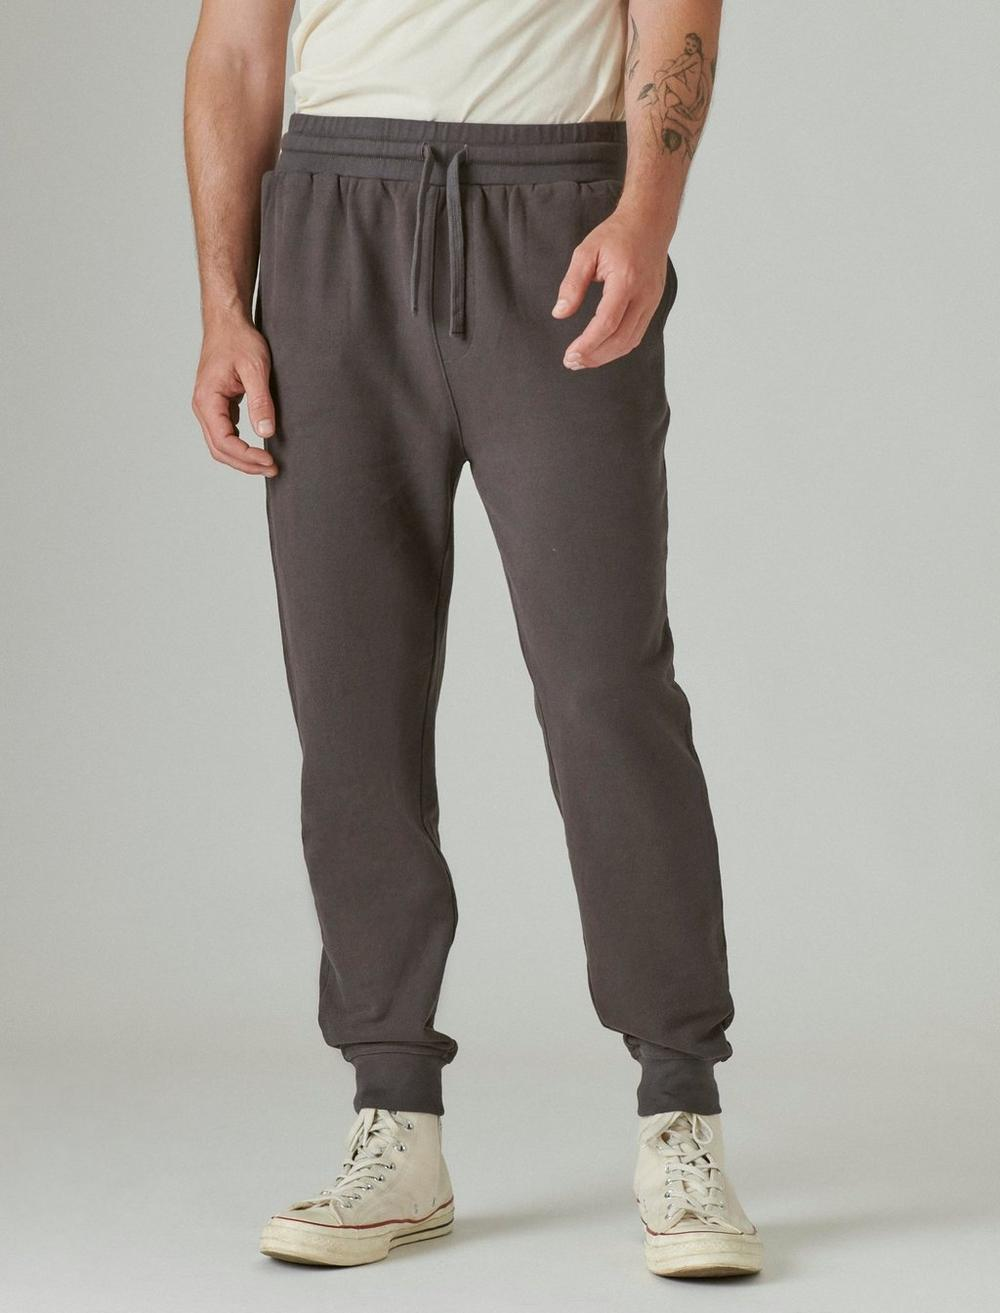 SUEDED FRENCH TERRY JOGGER PANT, image 4